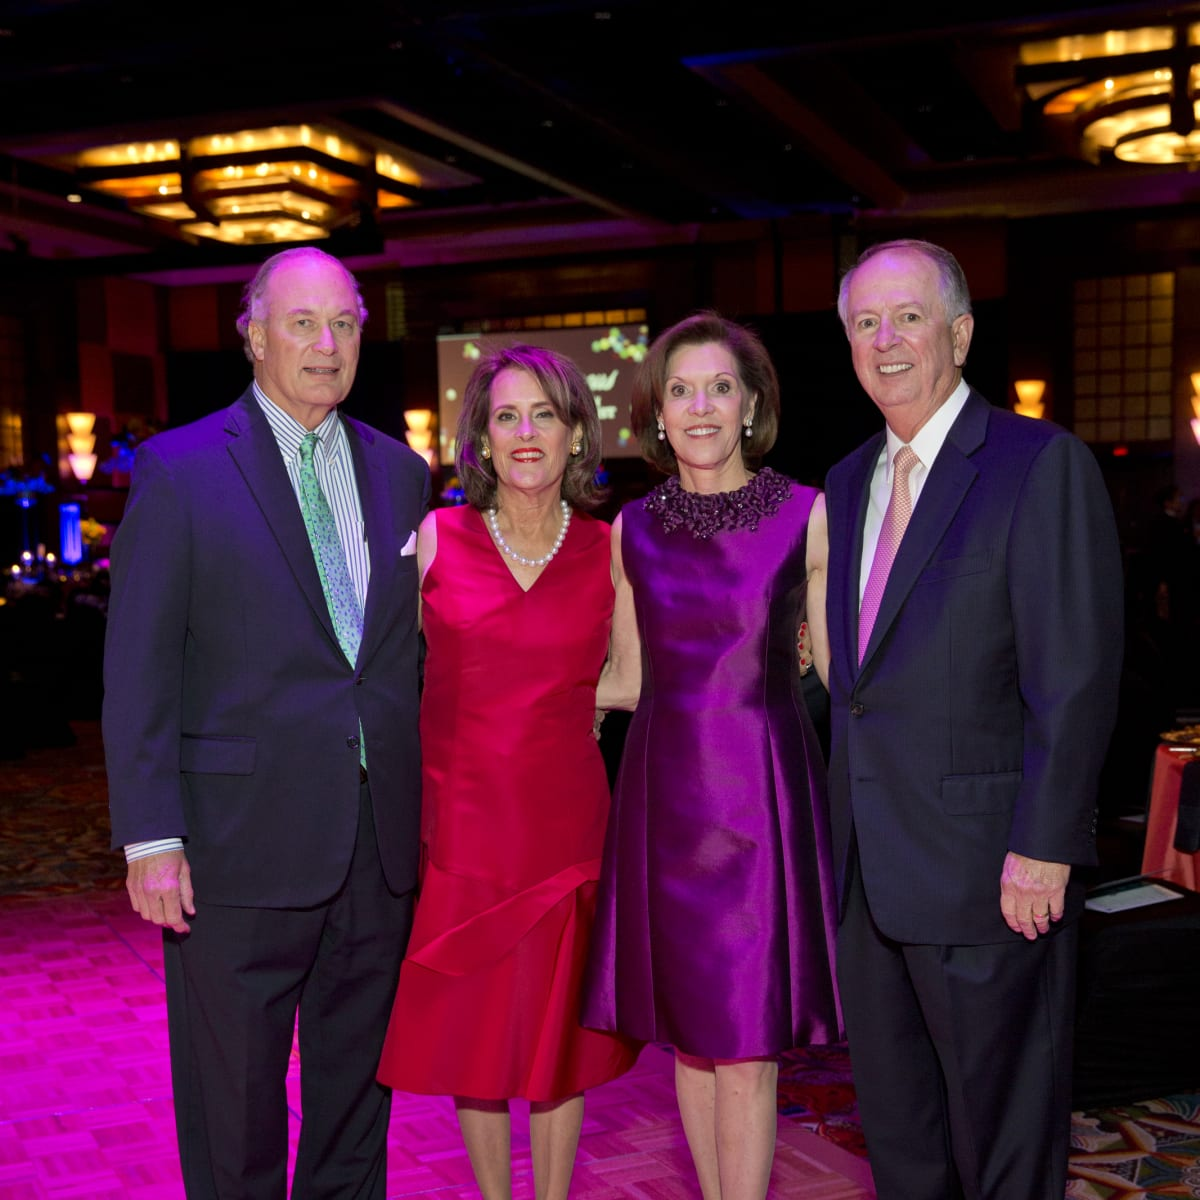 News, Shelby, Rendezvous with Houston Methodist, Nov. 2015, Peter Wareing, Elizabeth Wareing, Cam Canion, Rod Canion.